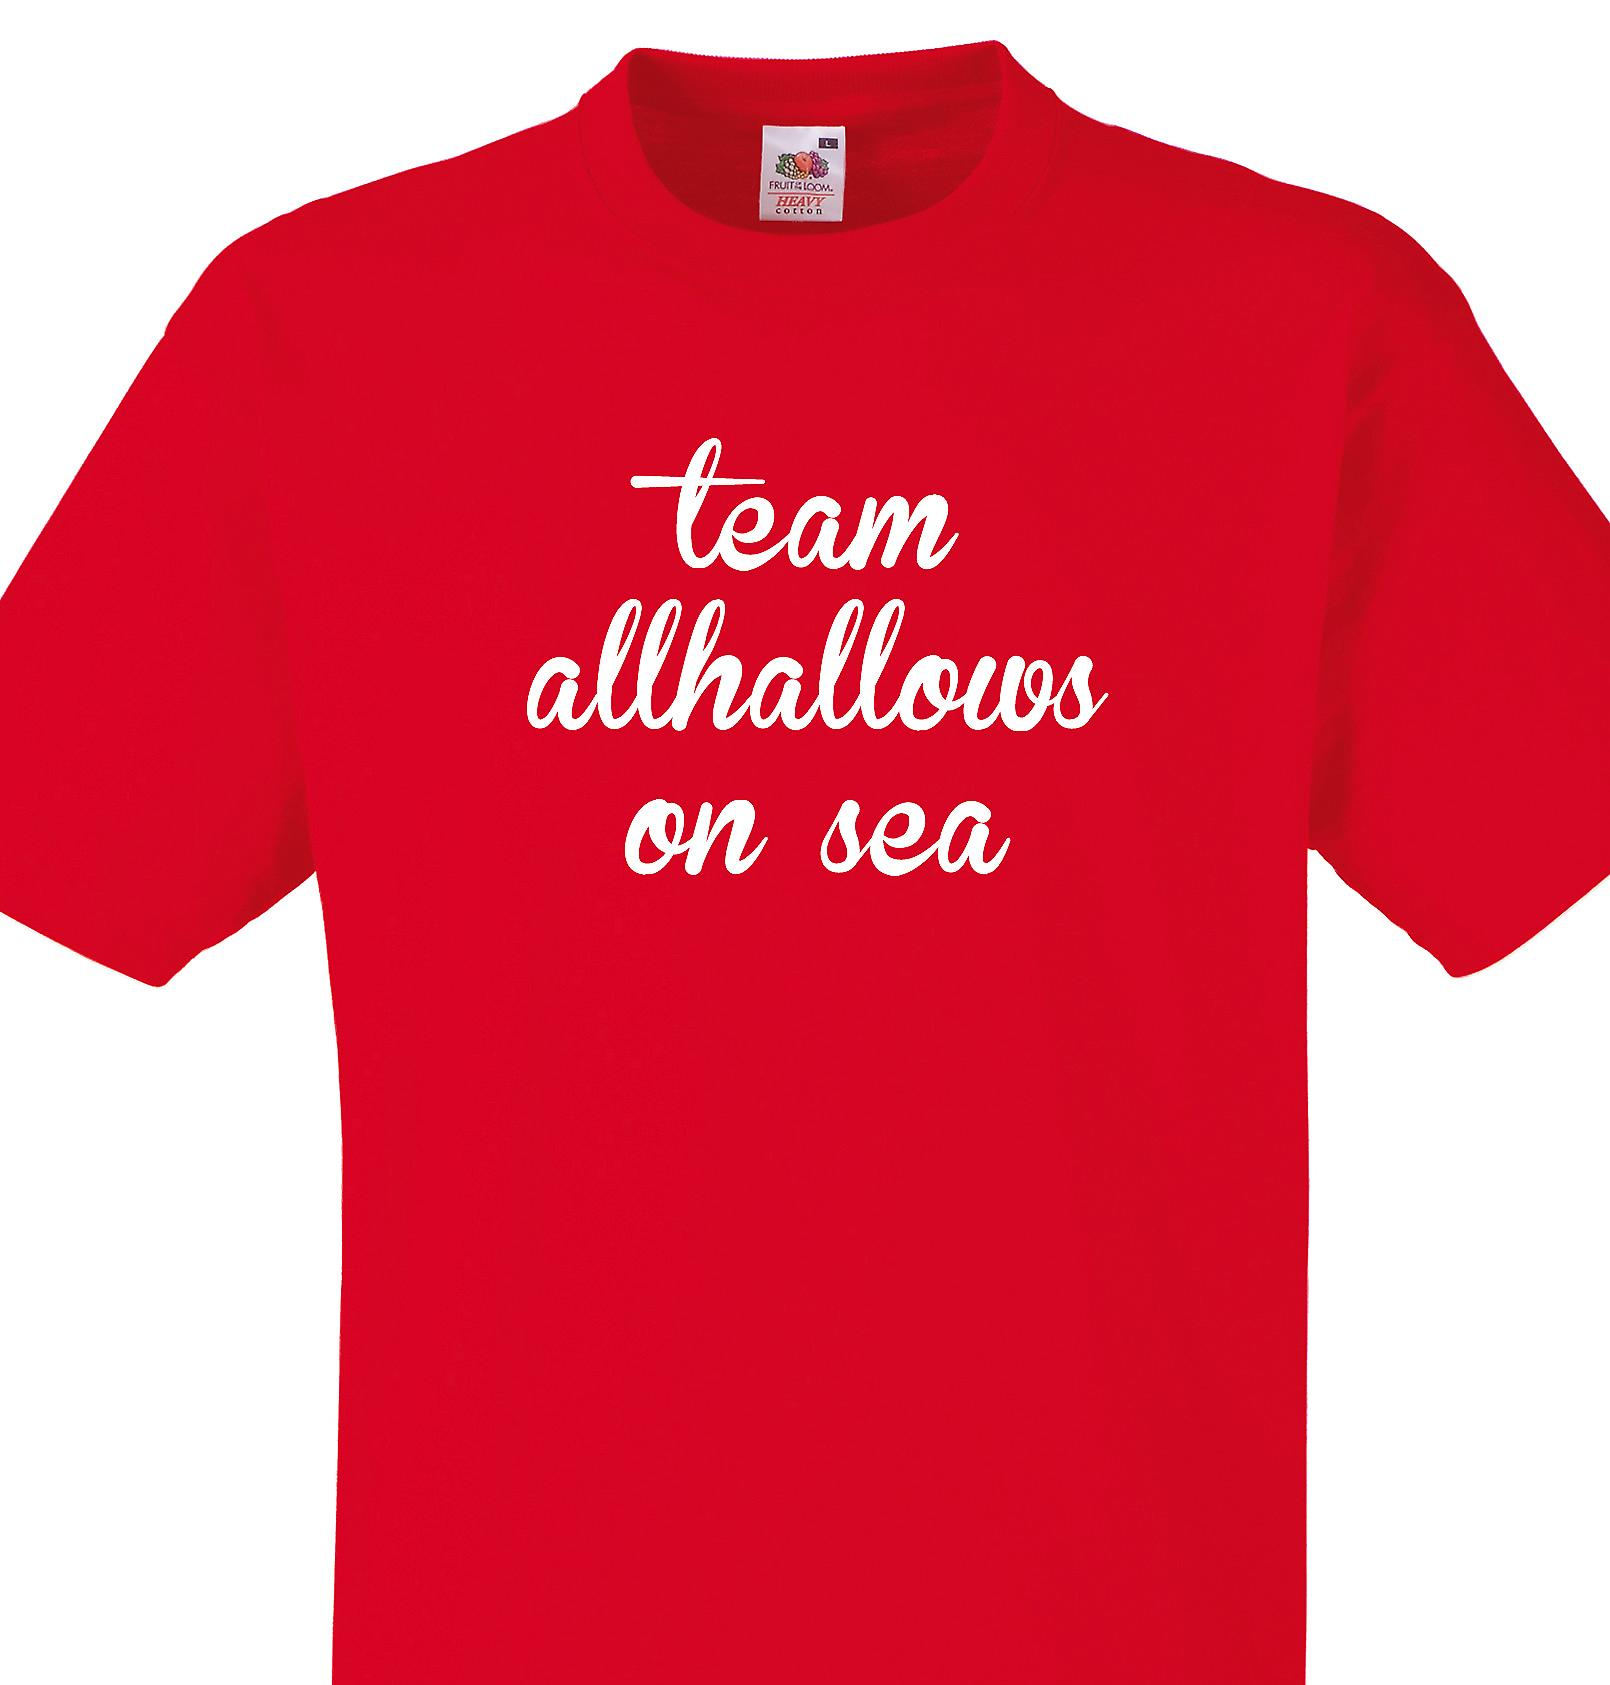 Team Allhallows on sea Red T shirt